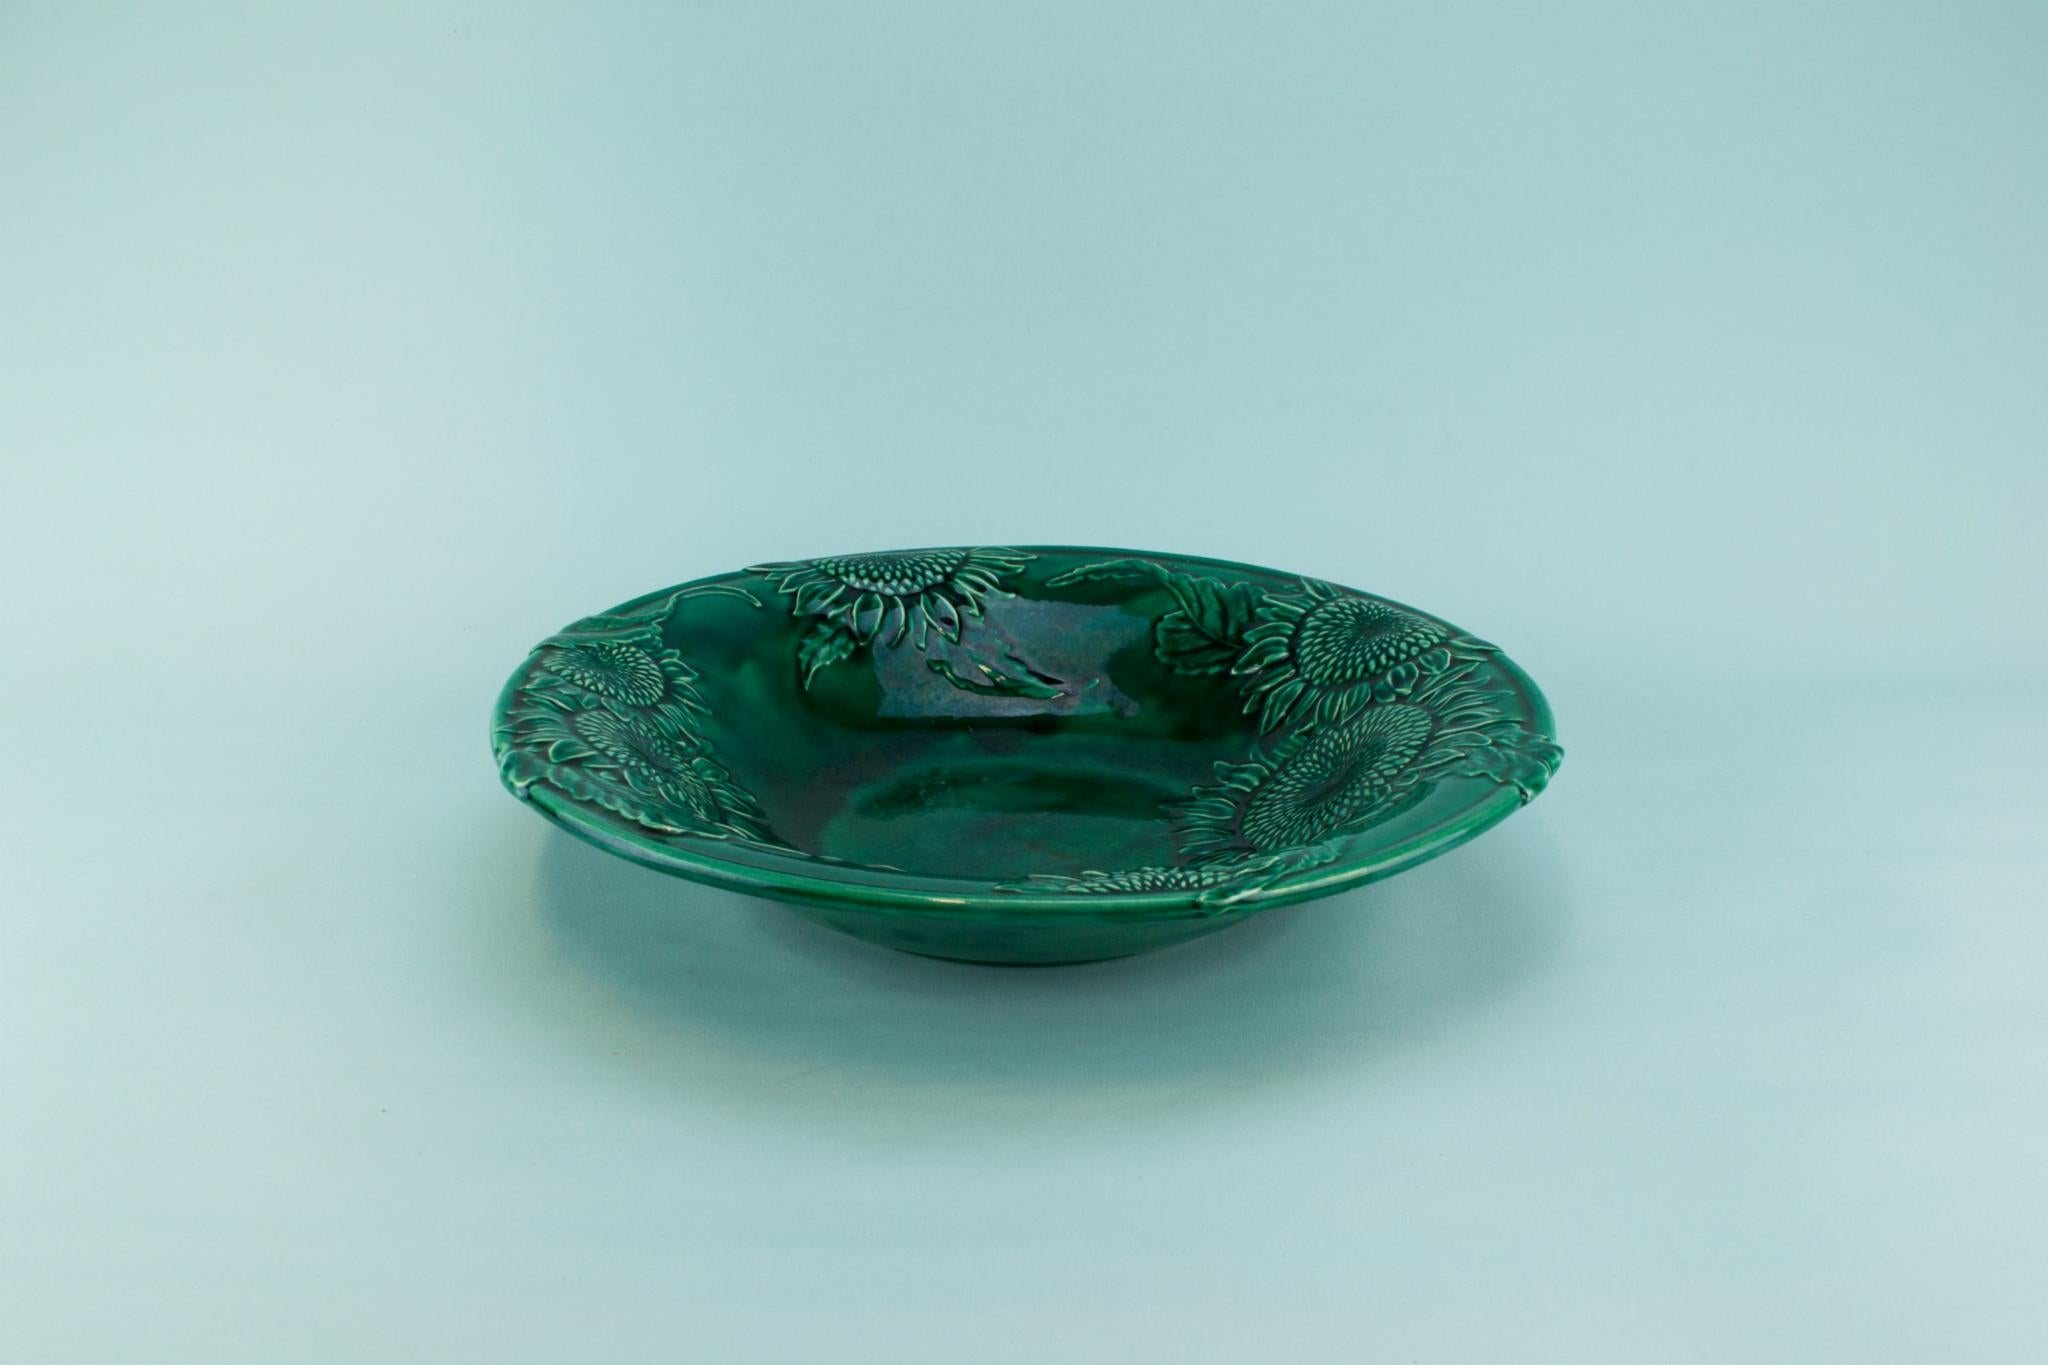 Large green majolica serving bowl, English 1930s